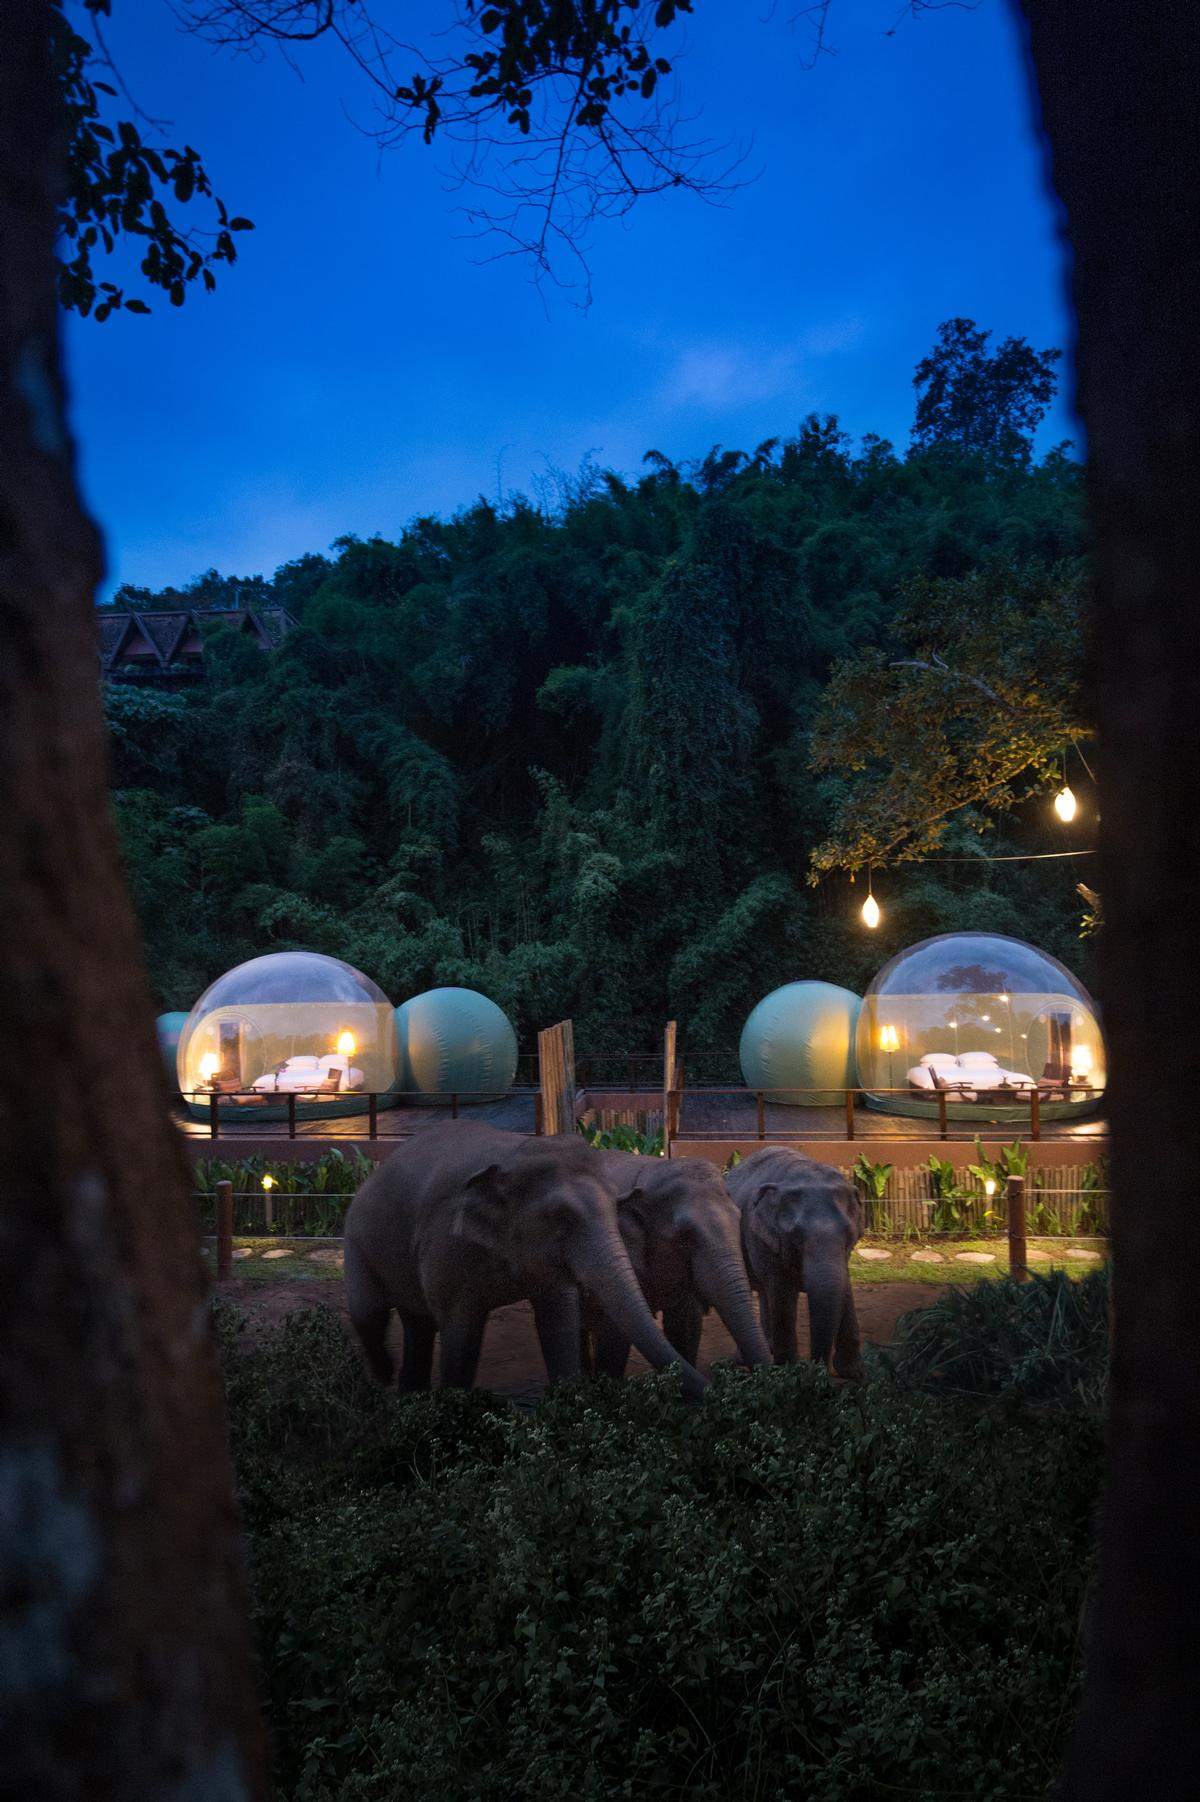 They house a fully air-conditioned bedroom and living space with a kingsize bed, a seating area, and an en-suite shower and a vanity space / Anantara Golden Triangle Elephant Camp & Resort